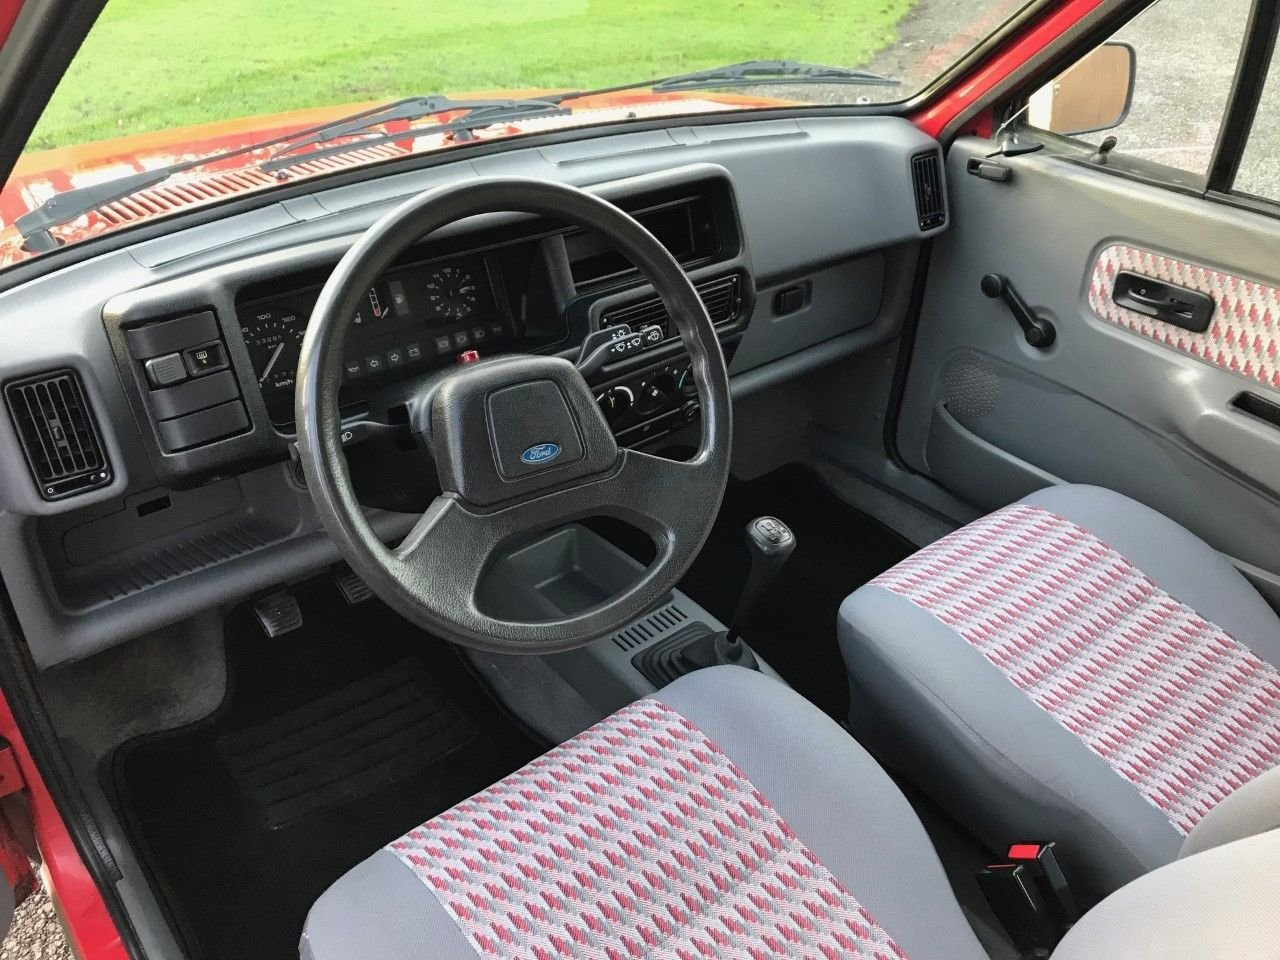 1988 FORD FIESTA MK2 IN RED L.H.D RUST FREE SIMPLY THE BEST! SOLD (picture 6 of 6)